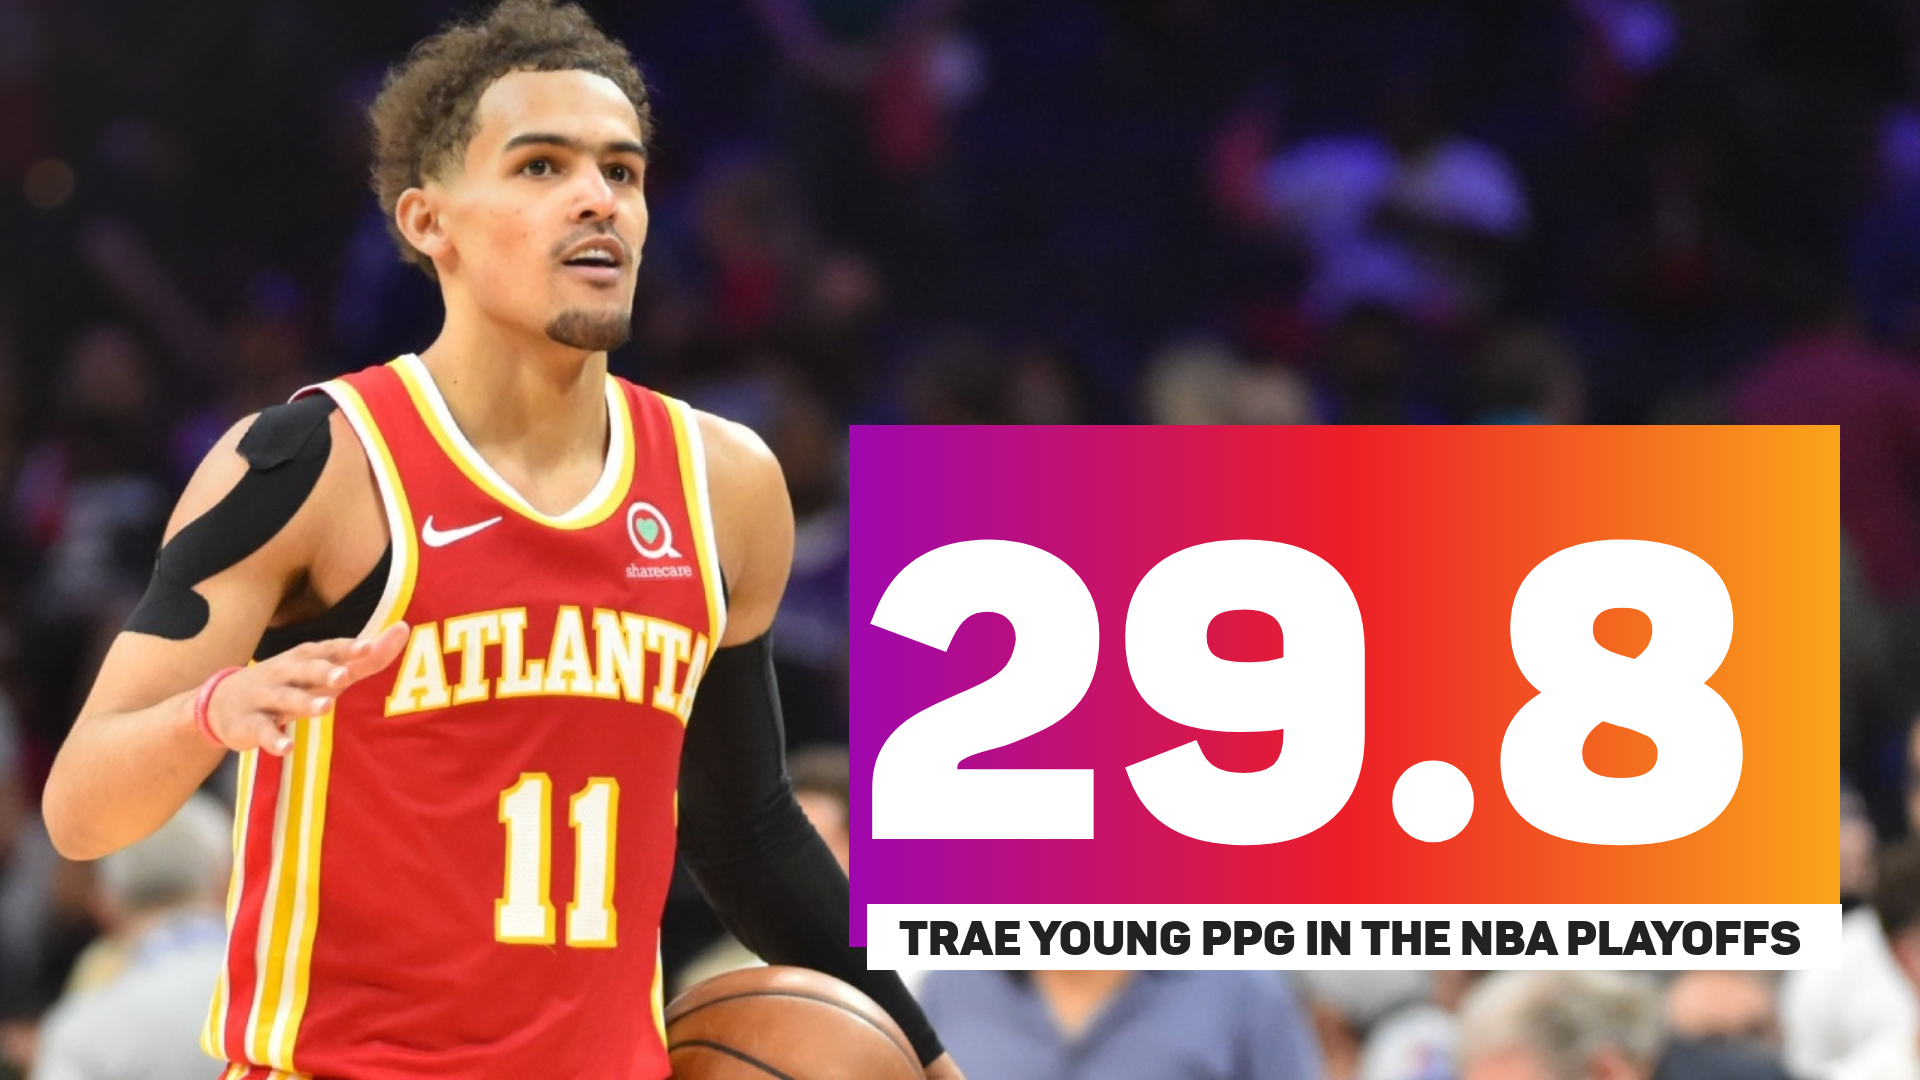 Trae Young NBA playoff numbers